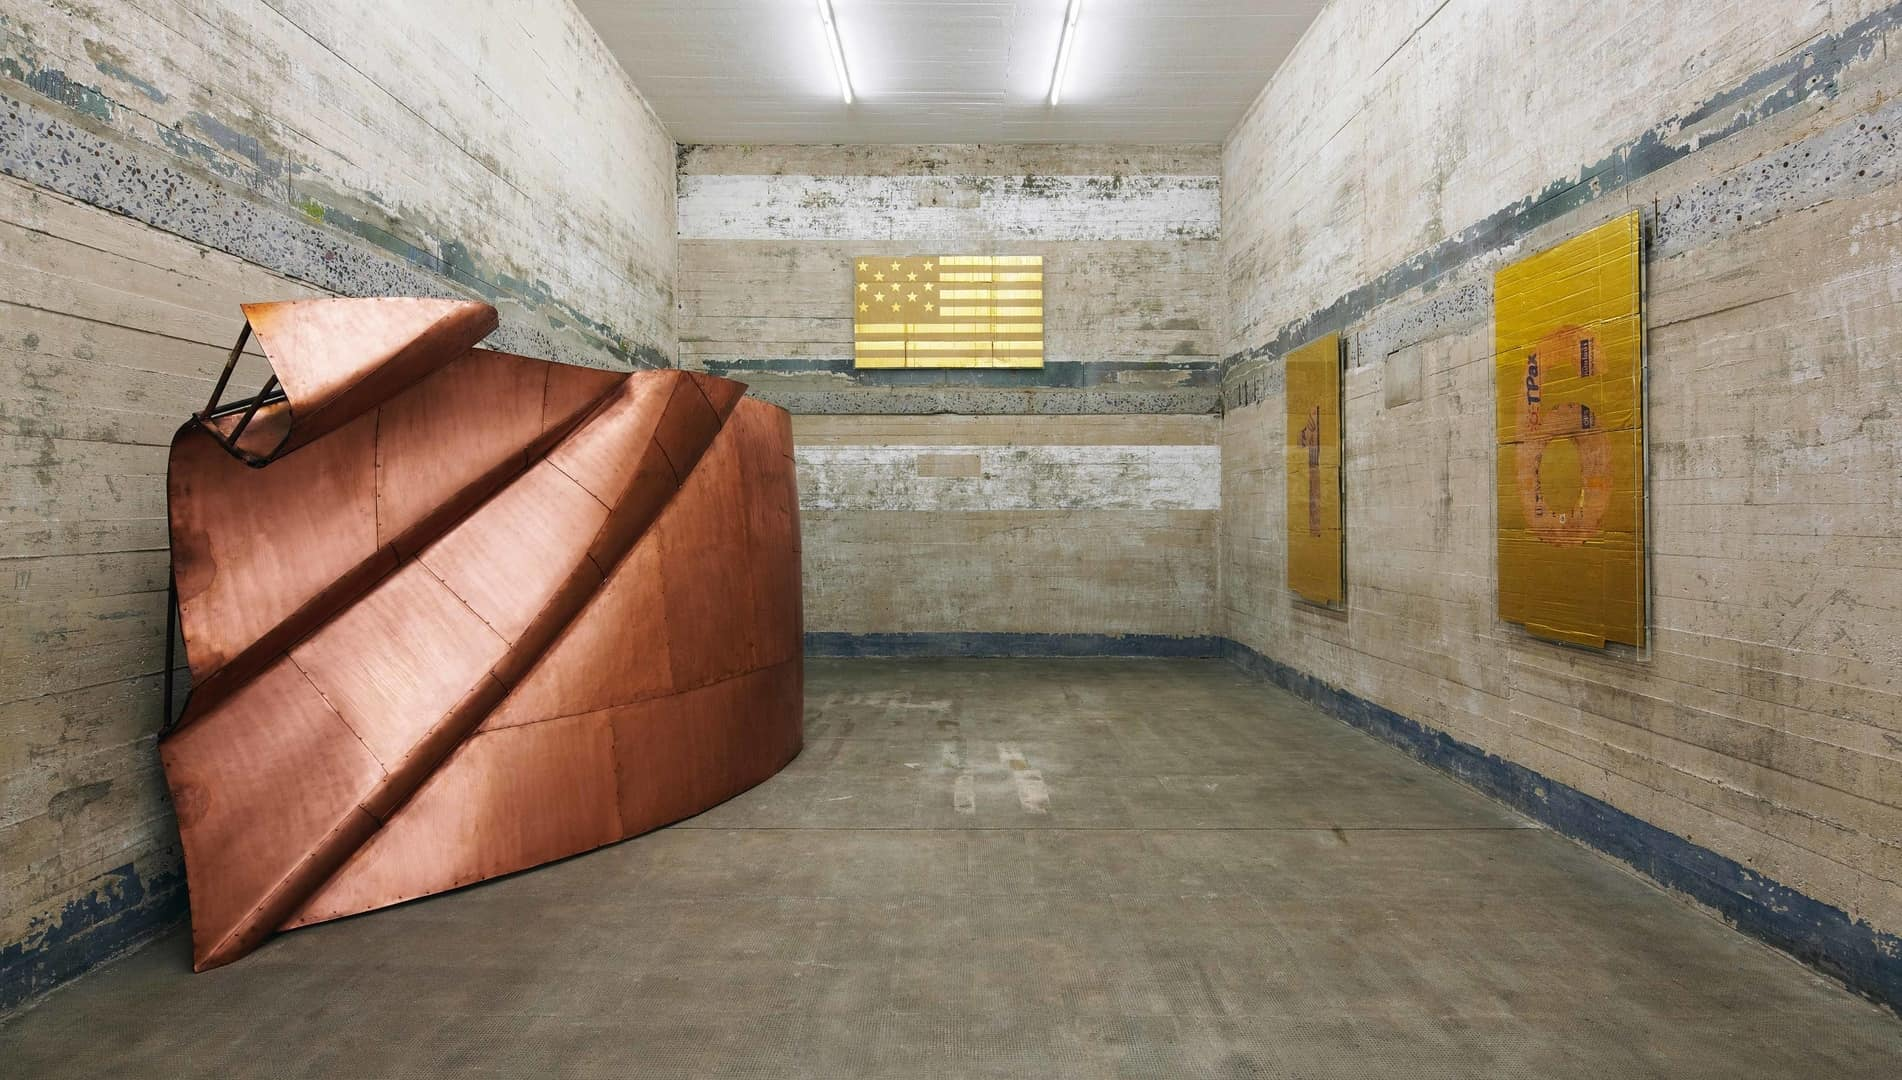 Danh Vo, Numbers (6), 2011; Trio, 2010; We the people (detail), 2011, Boros Collection / Bunker Berlin, 2015, Photo. NOSHE